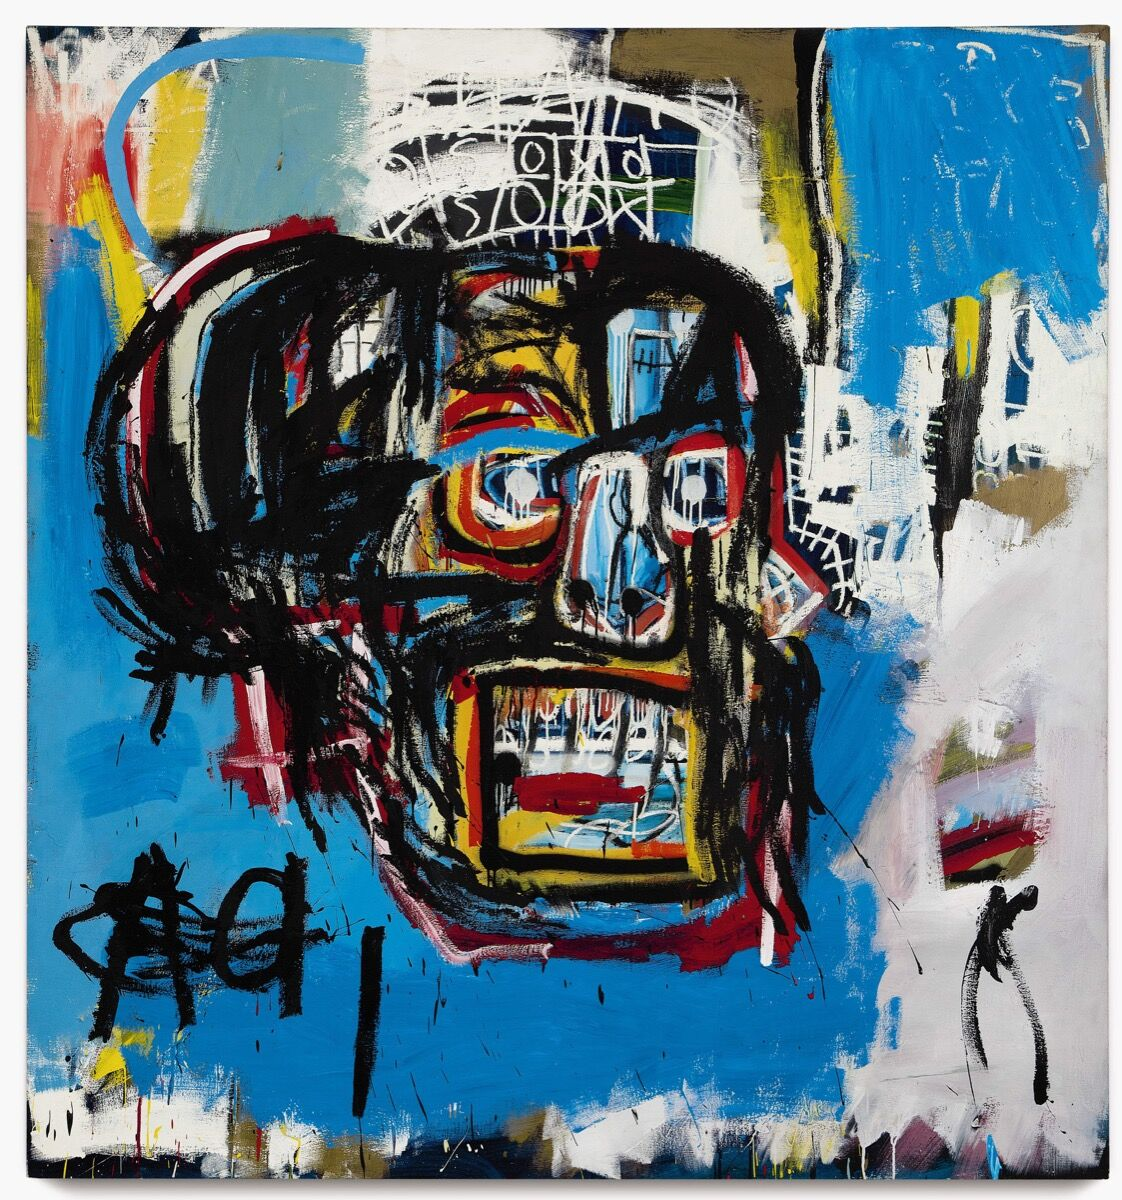 Jean-Michel Basquiat, Untitled, 1982. Courtesy of Sotheby's.